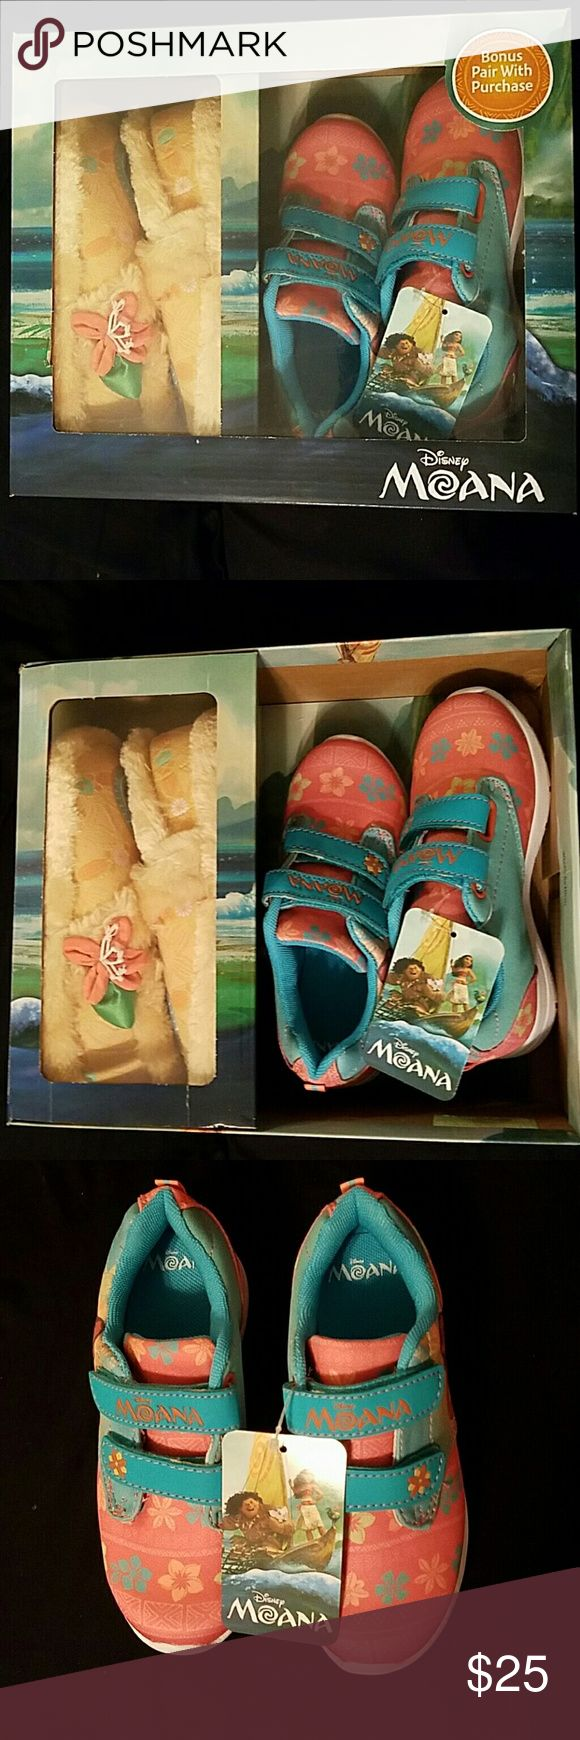 Disney Girls' Moana Sneaker & Slipper Gift Set Disney Girls' Moana Sneaker & Slipper Gift Set  New in Box  Size:  12   Sneakers: Hook-and-loop closure, padded collar, cushioned tongue, knit upper, round toe, cushioned footbed, ethylene vinyl acetate midsole, ethylene vinyl acetate outsole   Slippers: Slip-on, plush upper, round toe, cushioned footbed, fabric midsole, non-slip gripper outsole Disney Shoes Sneakers